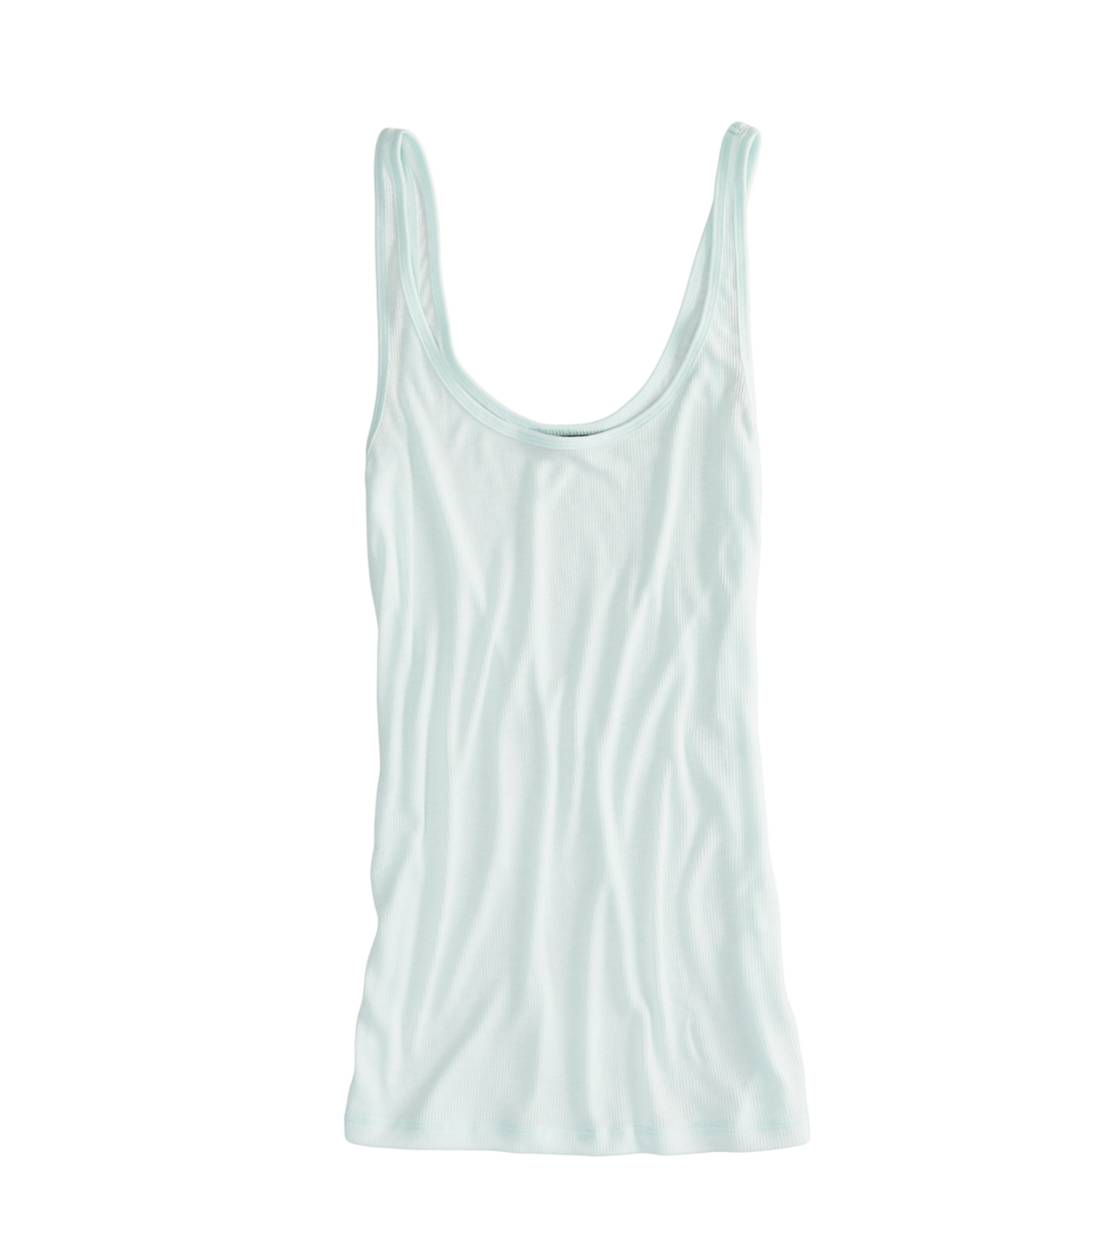 Ocean View AE Double Scoop Boyfriend Tank